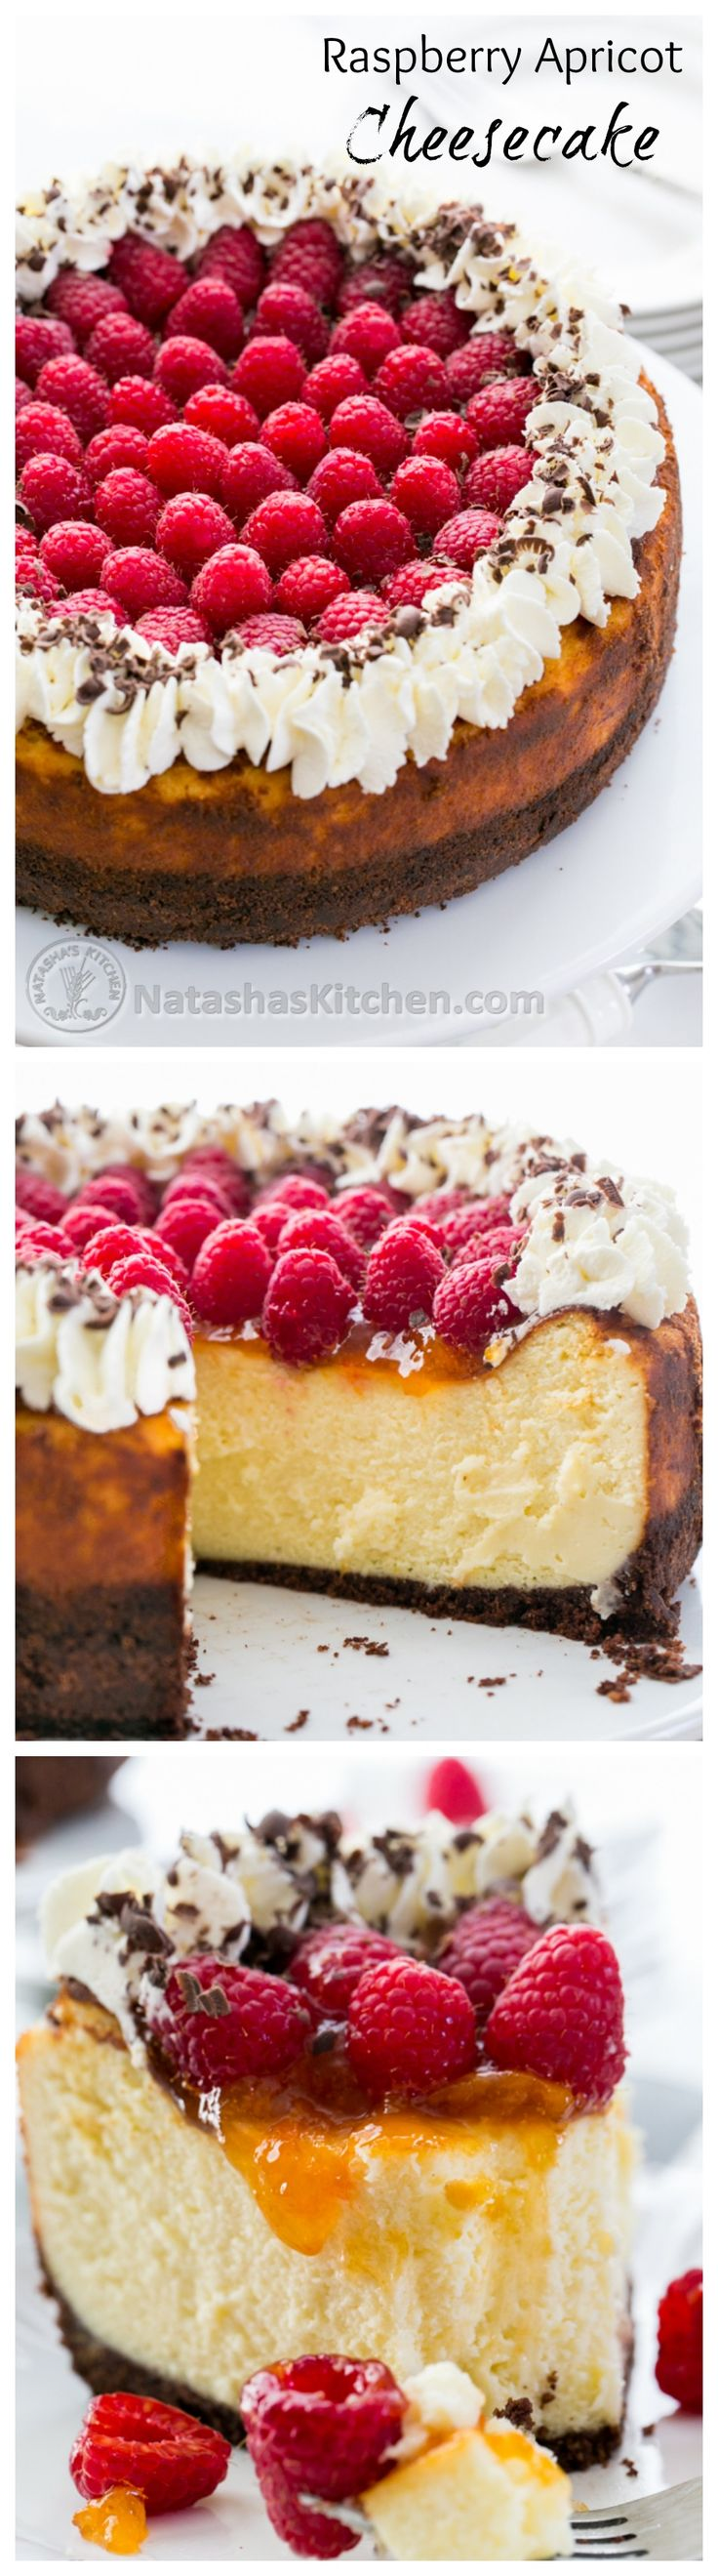 Raspberry Apricot Cheesecake with Chocolate Crust. This is the best cheesecake I've ever made or tried! So simple and absolutely delicious!! @natashaskitchen